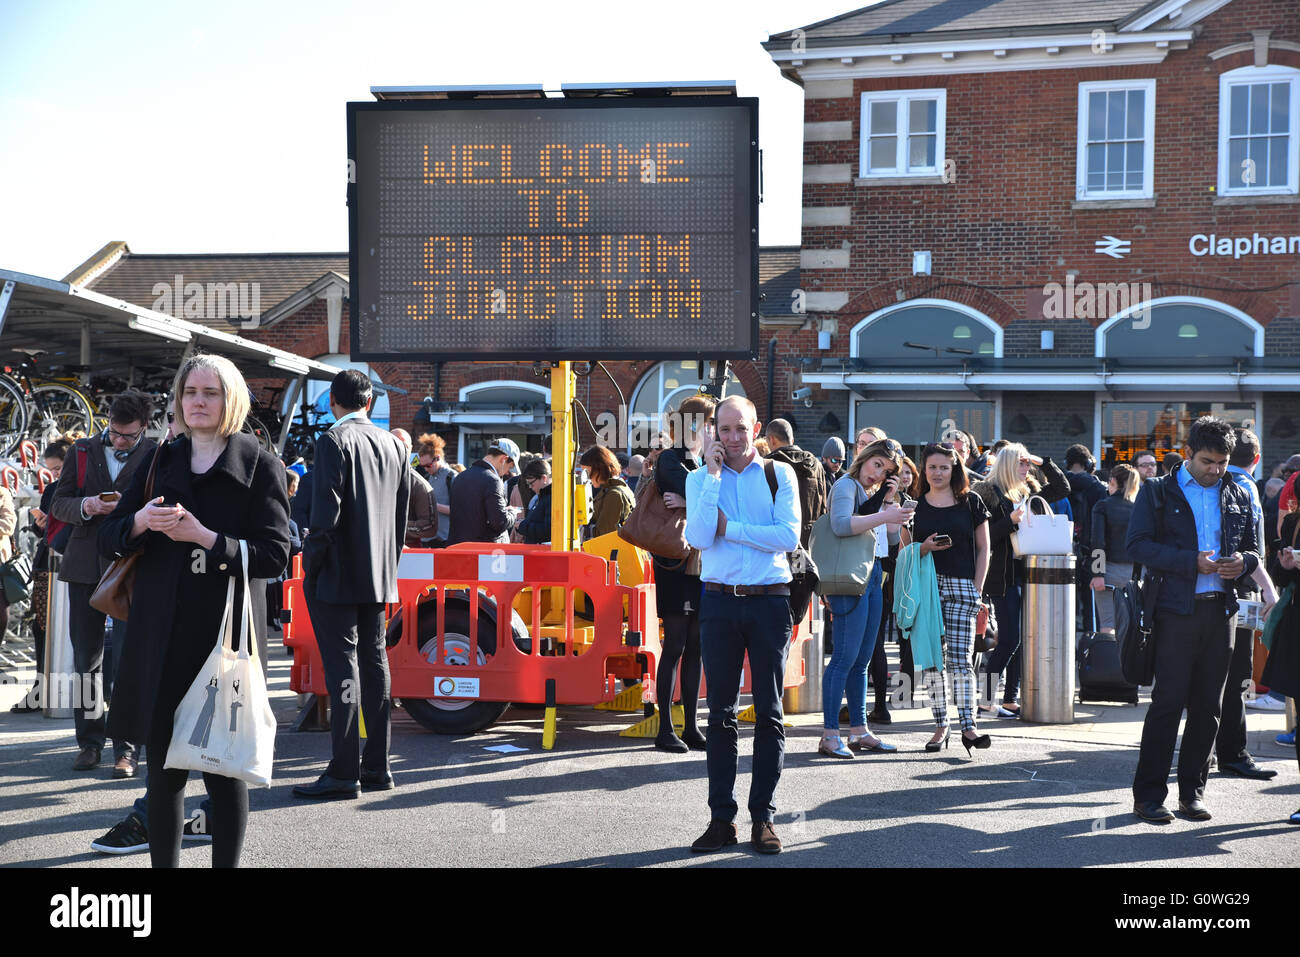 Clapham Junction, London, UK. 5th May, 2016. Commuters ouside Clapham Junction Station after the evacuation, - Stock Image